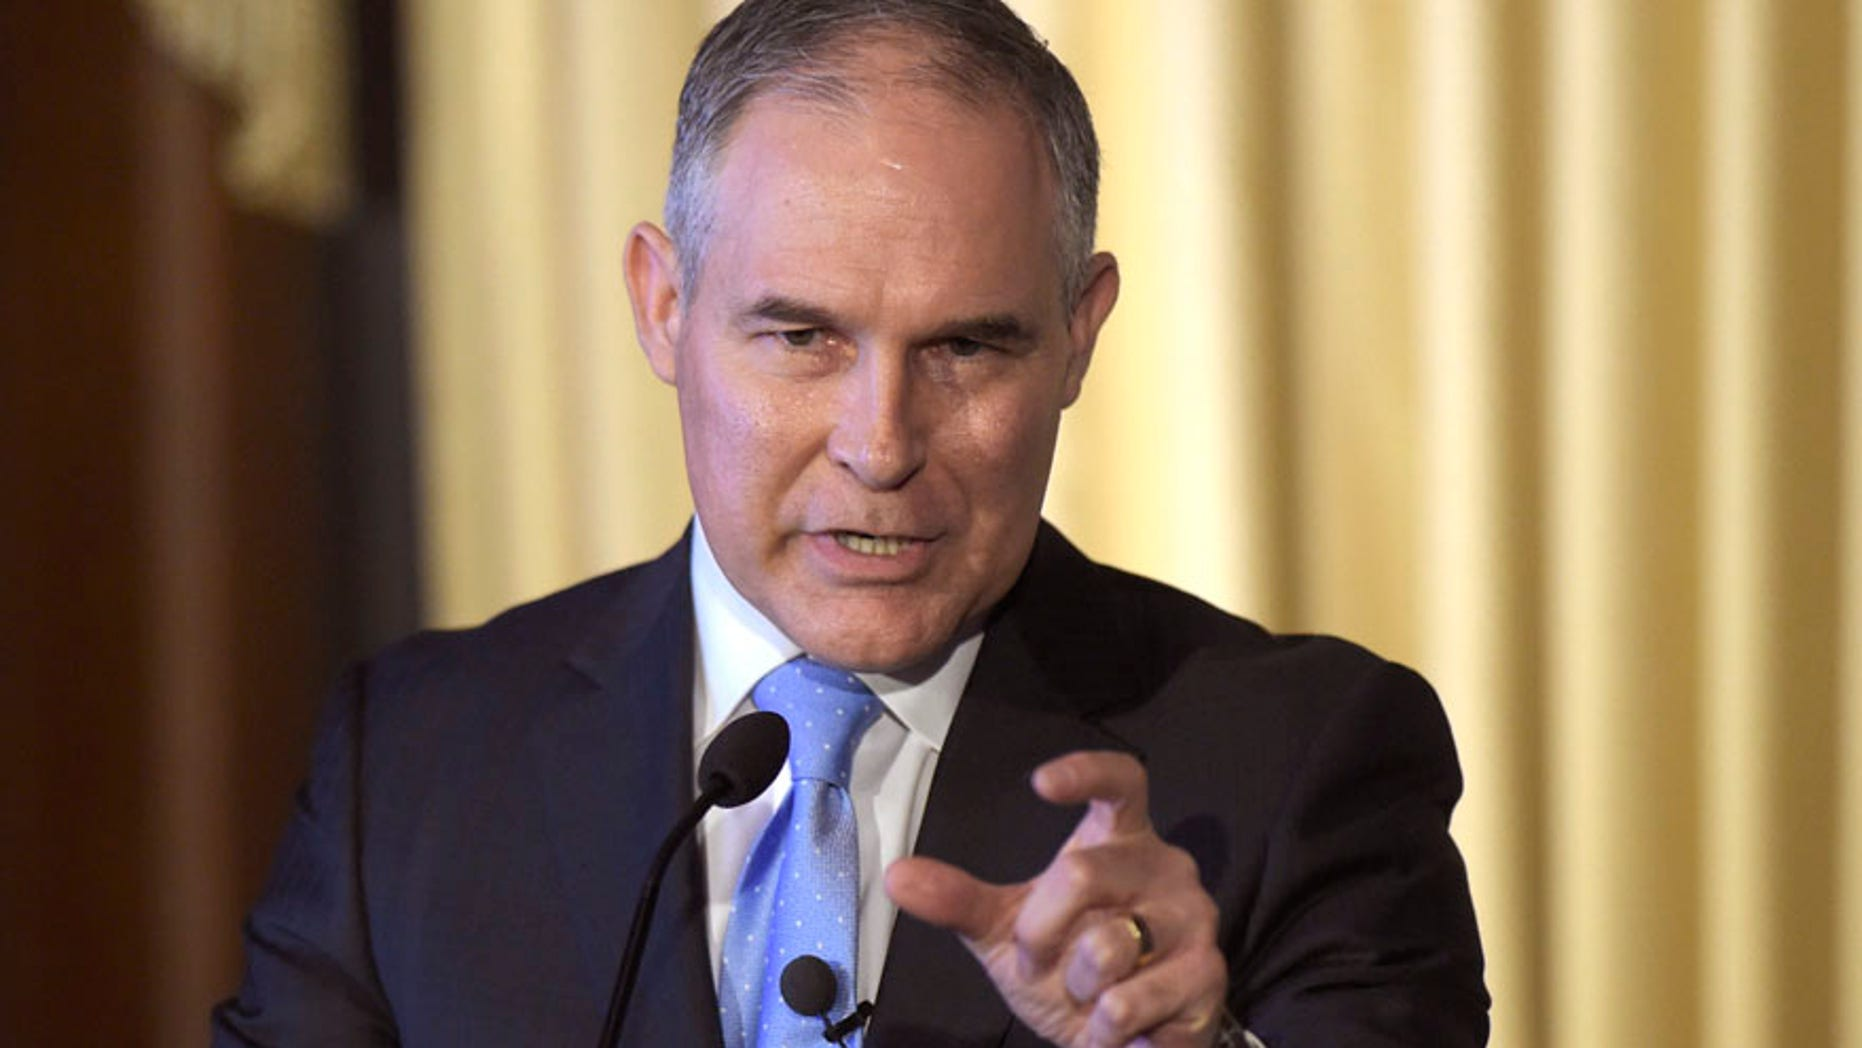 In this Feb. 21, 2017, file photo, Environmental Protection Agency (EPA) Administrator Scott Pruitt speaks to employees of the EPA in Washington.